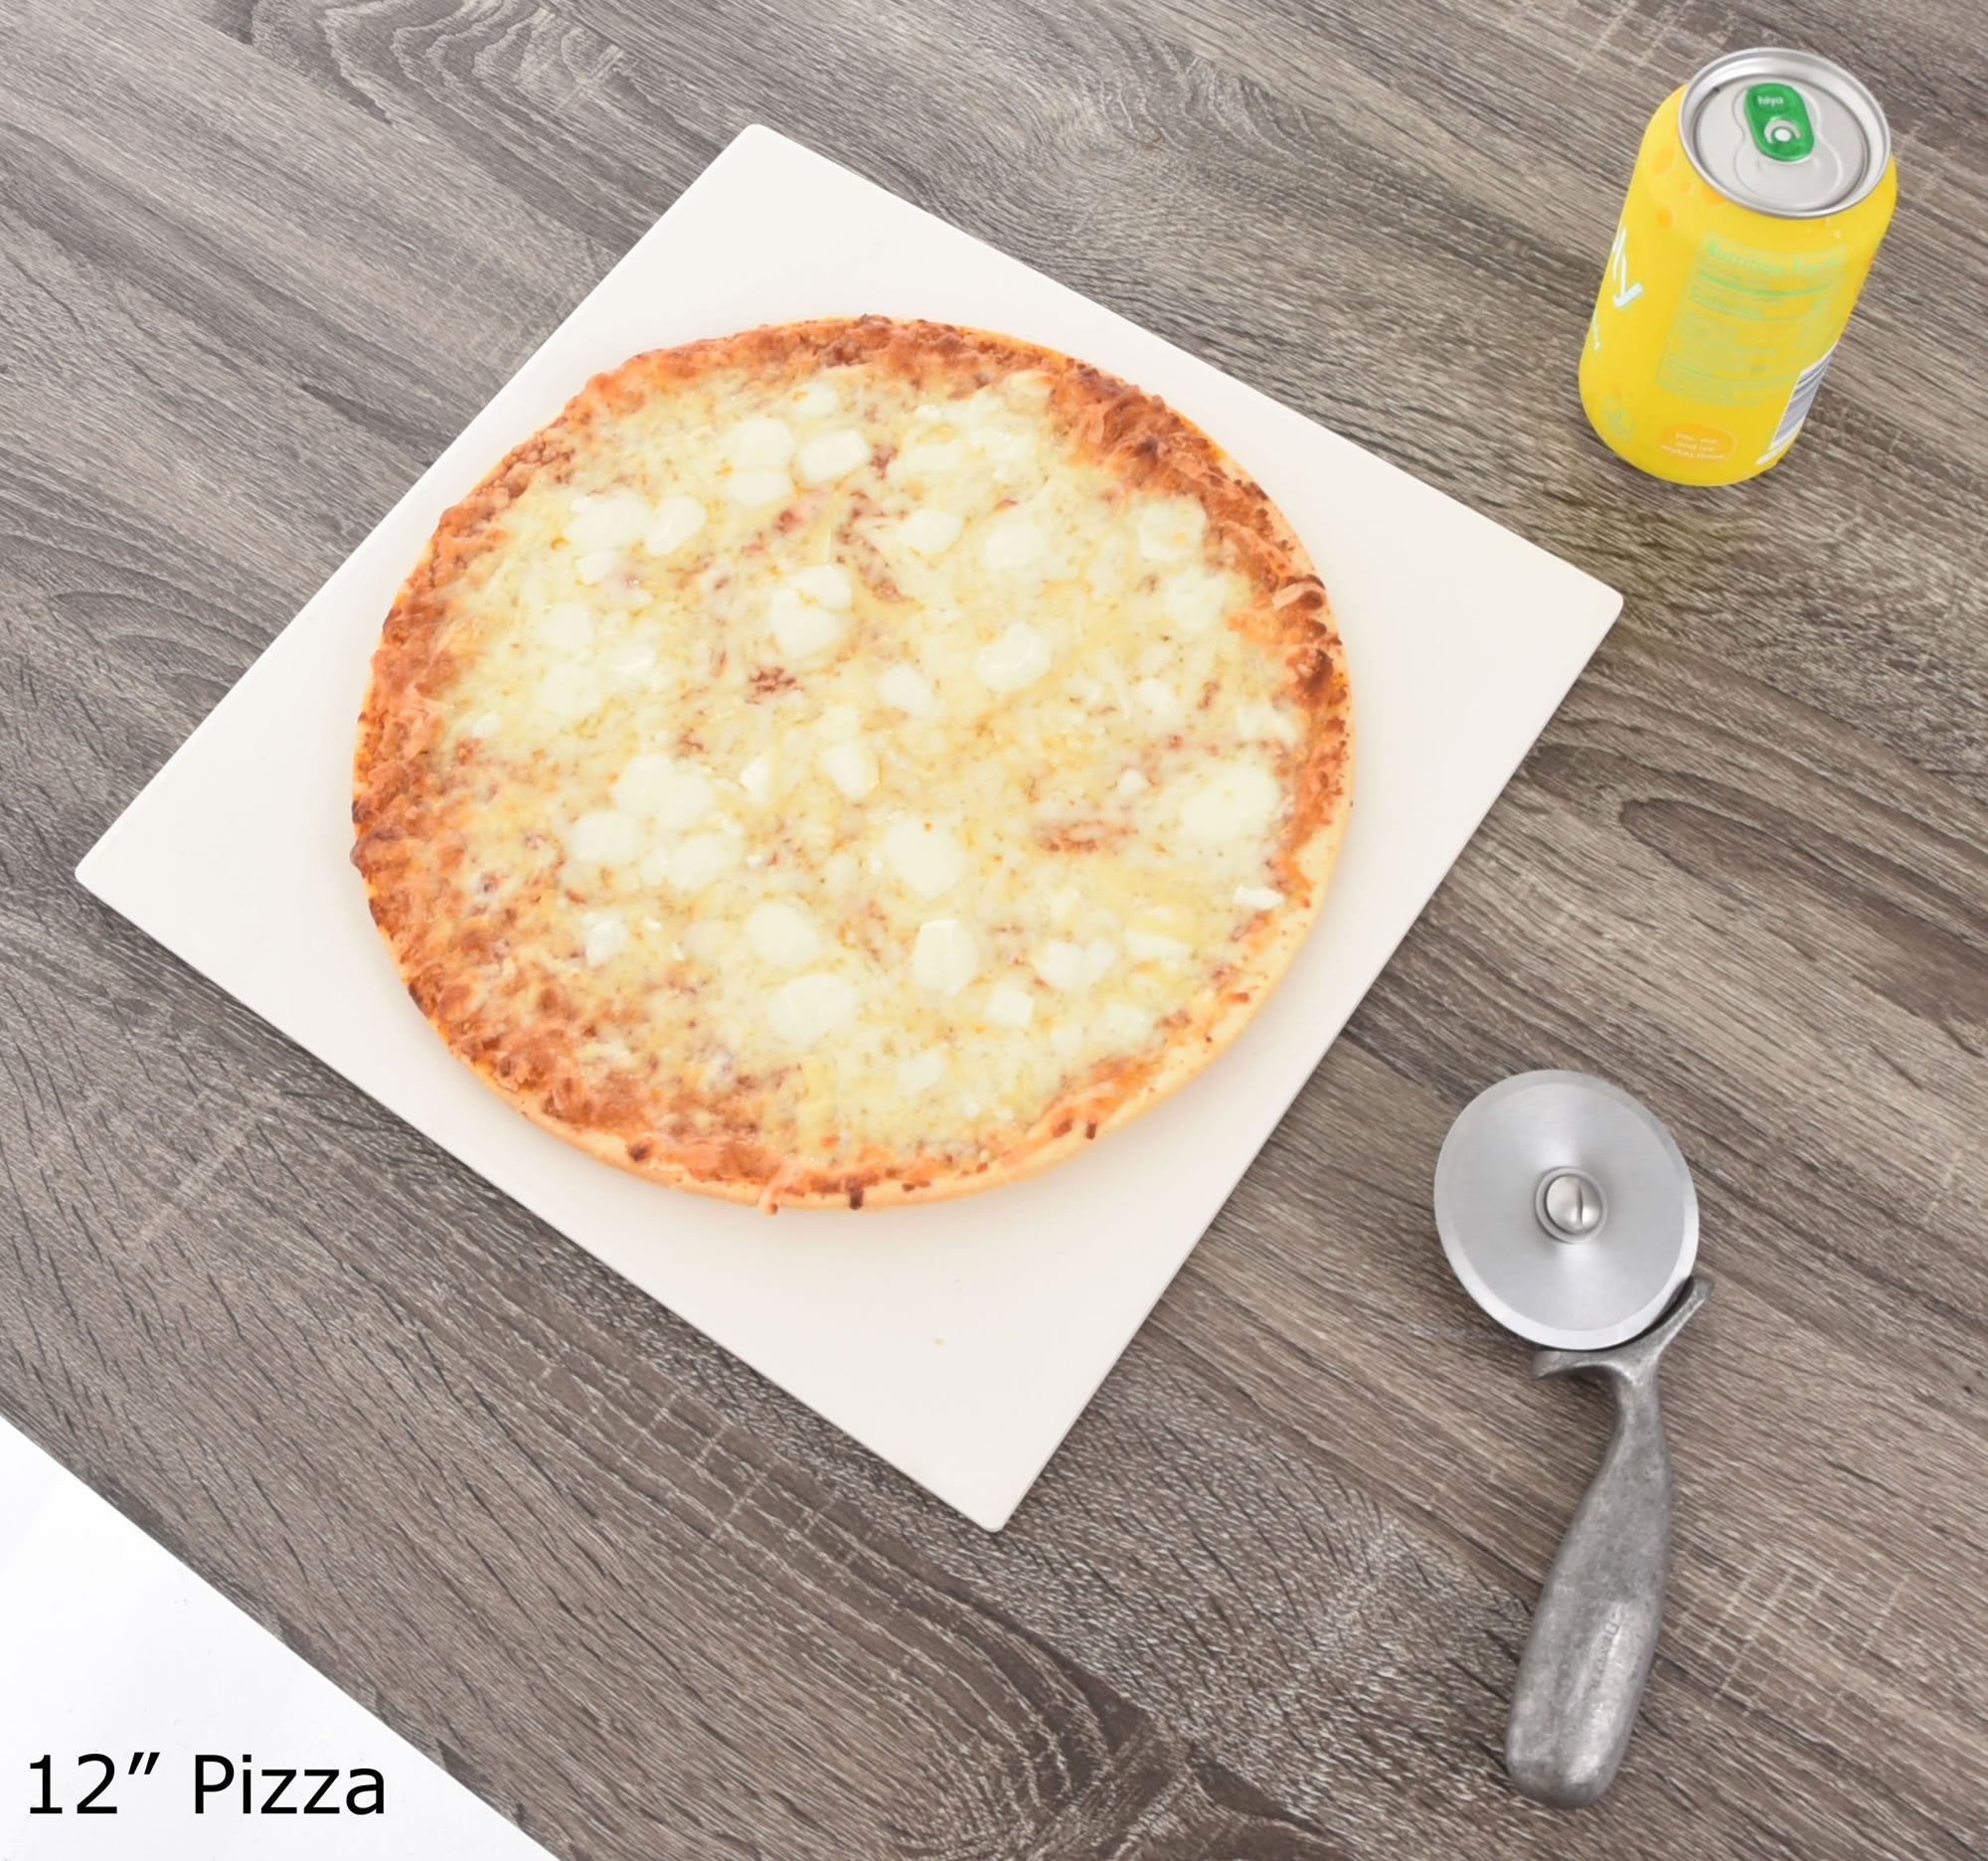 products/241-PIZZABOX__life__01.jpg